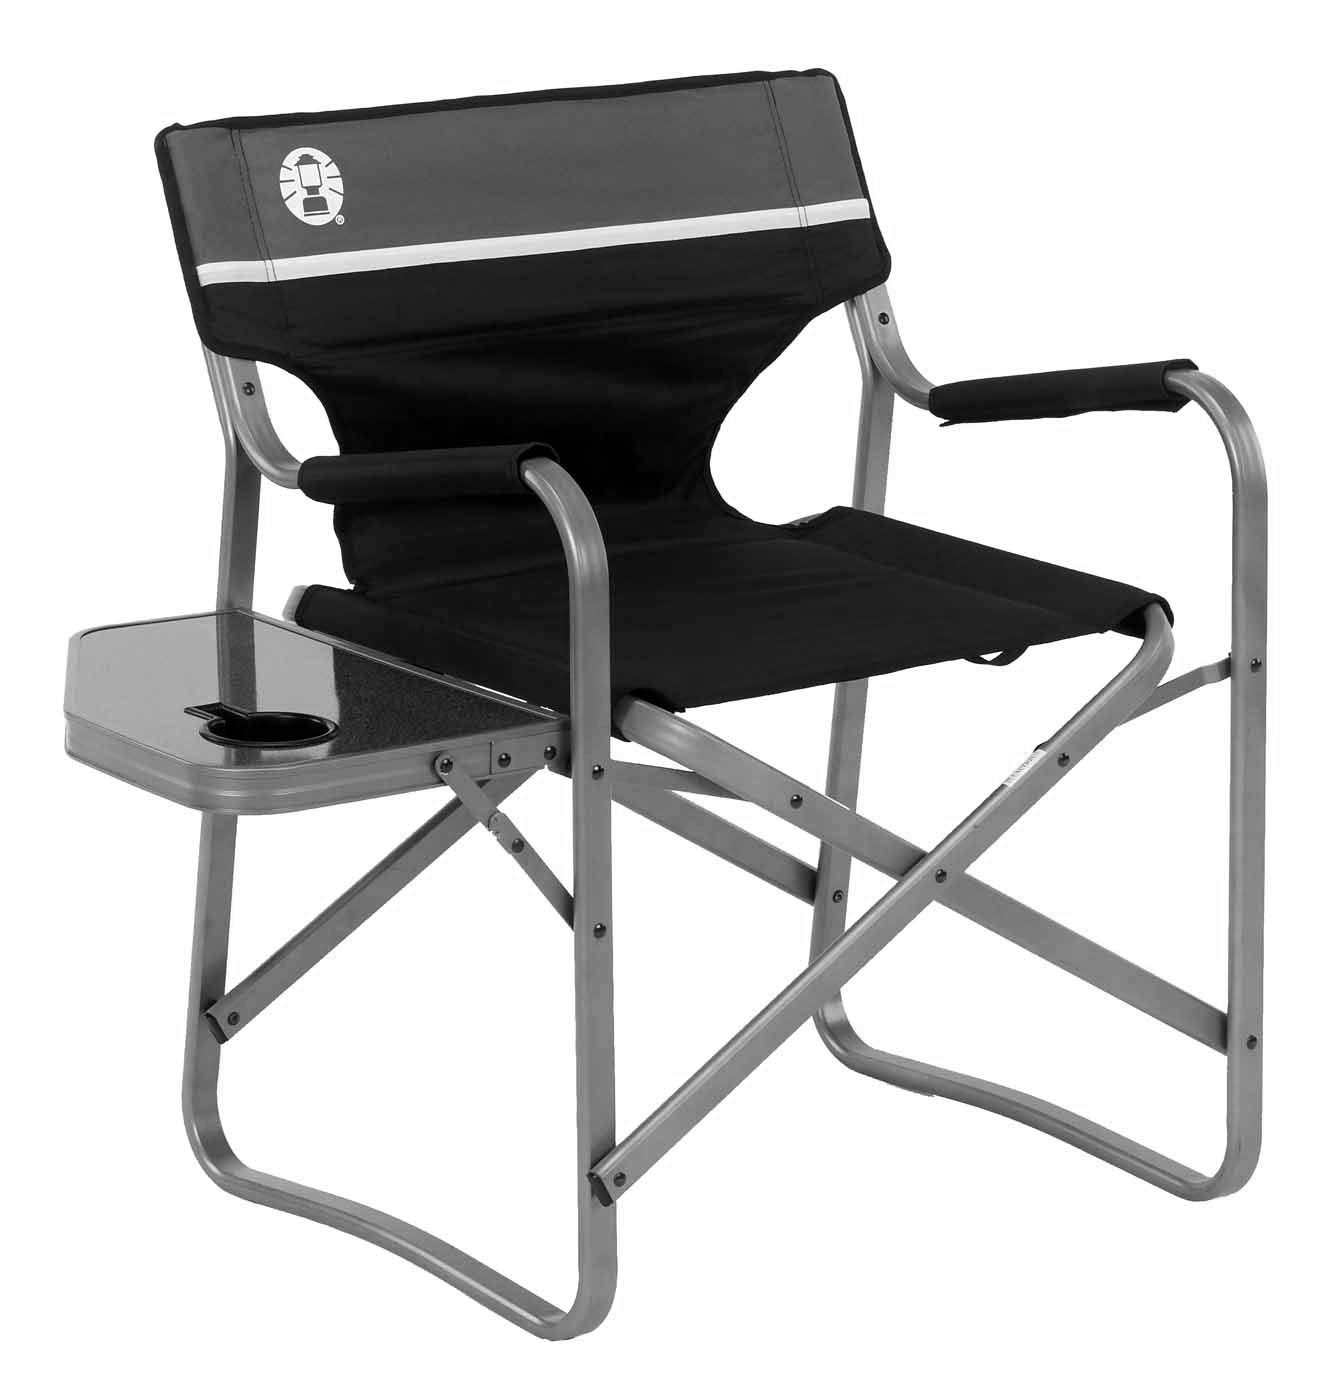 Coleman Camp Chair with Side Table | Folding Beach Chair | Portable Deck Chair for Tailgating, Camping & Outdoors by Coleman